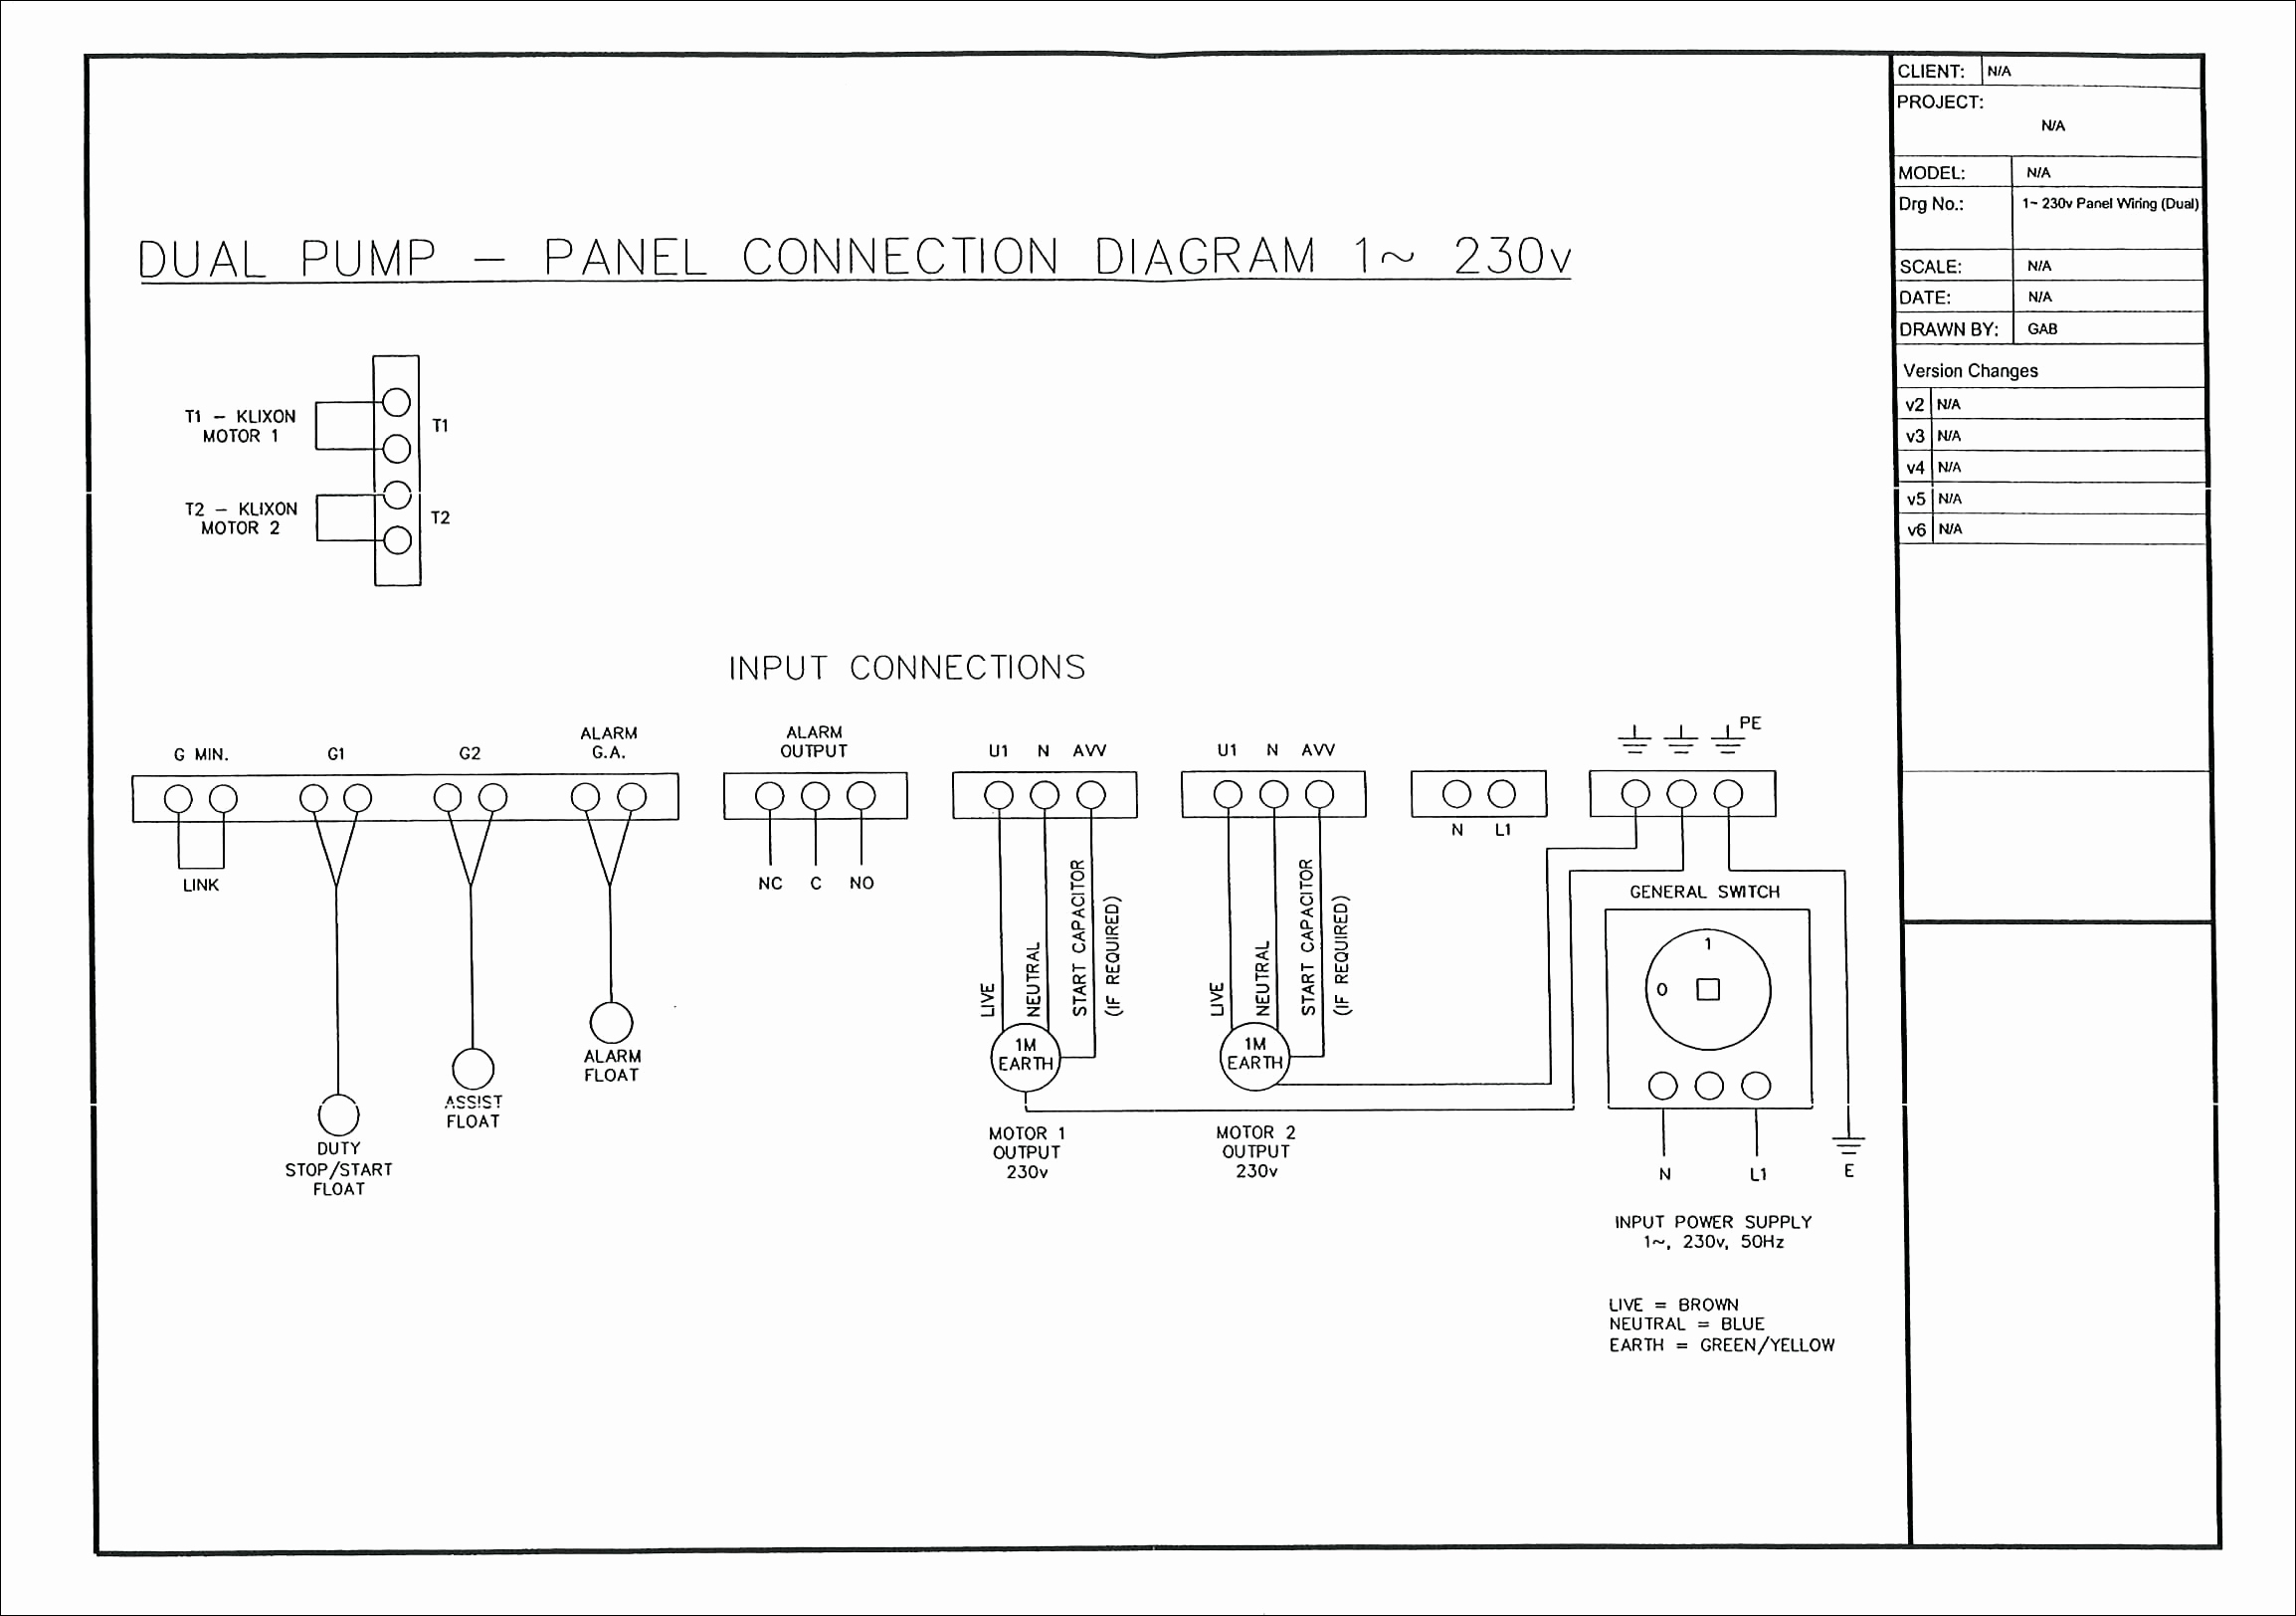 Diagram Filepump Control Panel Wiring File Sw38866 on troubleshooting diagram, installation diagram, solar panels diagram, telecommunications diagram, panel wiring icon, plc diagram, electricians diagram, drilling diagram, instrumentation diagram, grounding diagram, assembly diagram, rslogix diagram,